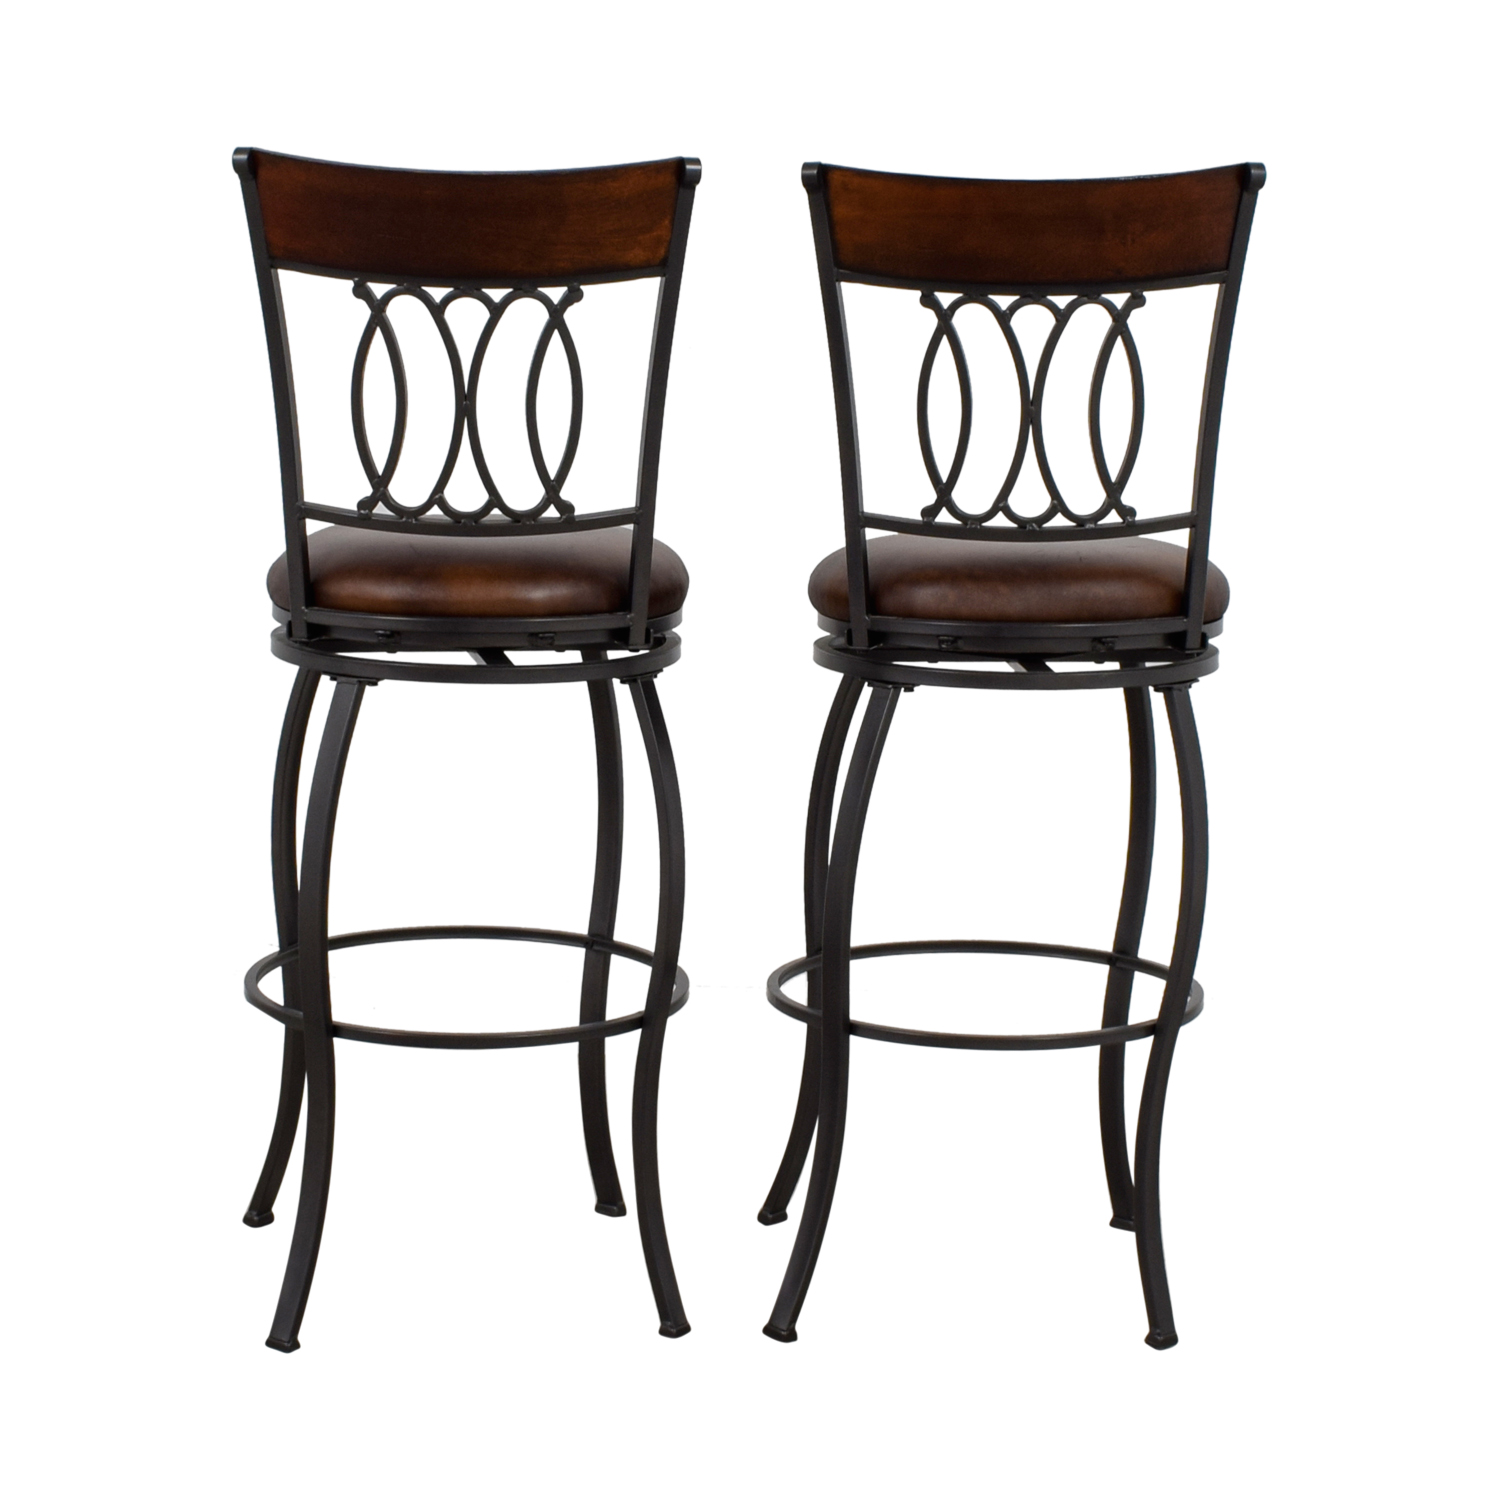 Awe Inspiring 80 Off Bobs Discount Furniture Bobs Furniture Brown Swivel Bar Stools Chairs Creativecarmelina Interior Chair Design Creativecarmelinacom